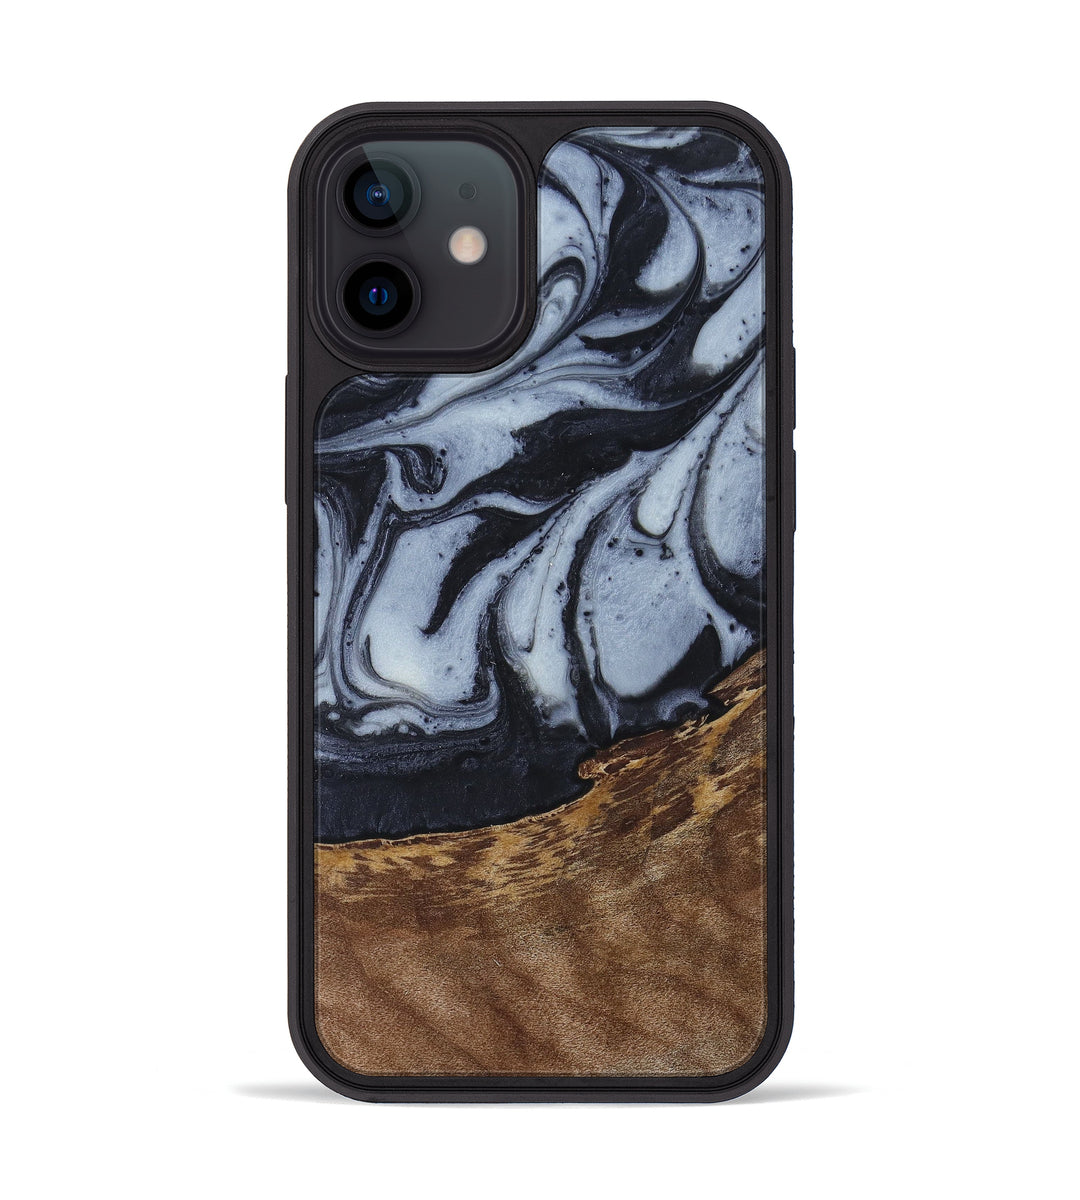 iPhone 12 mini Wood+Resin Phone Case - Richardson (Black & White, 397898)